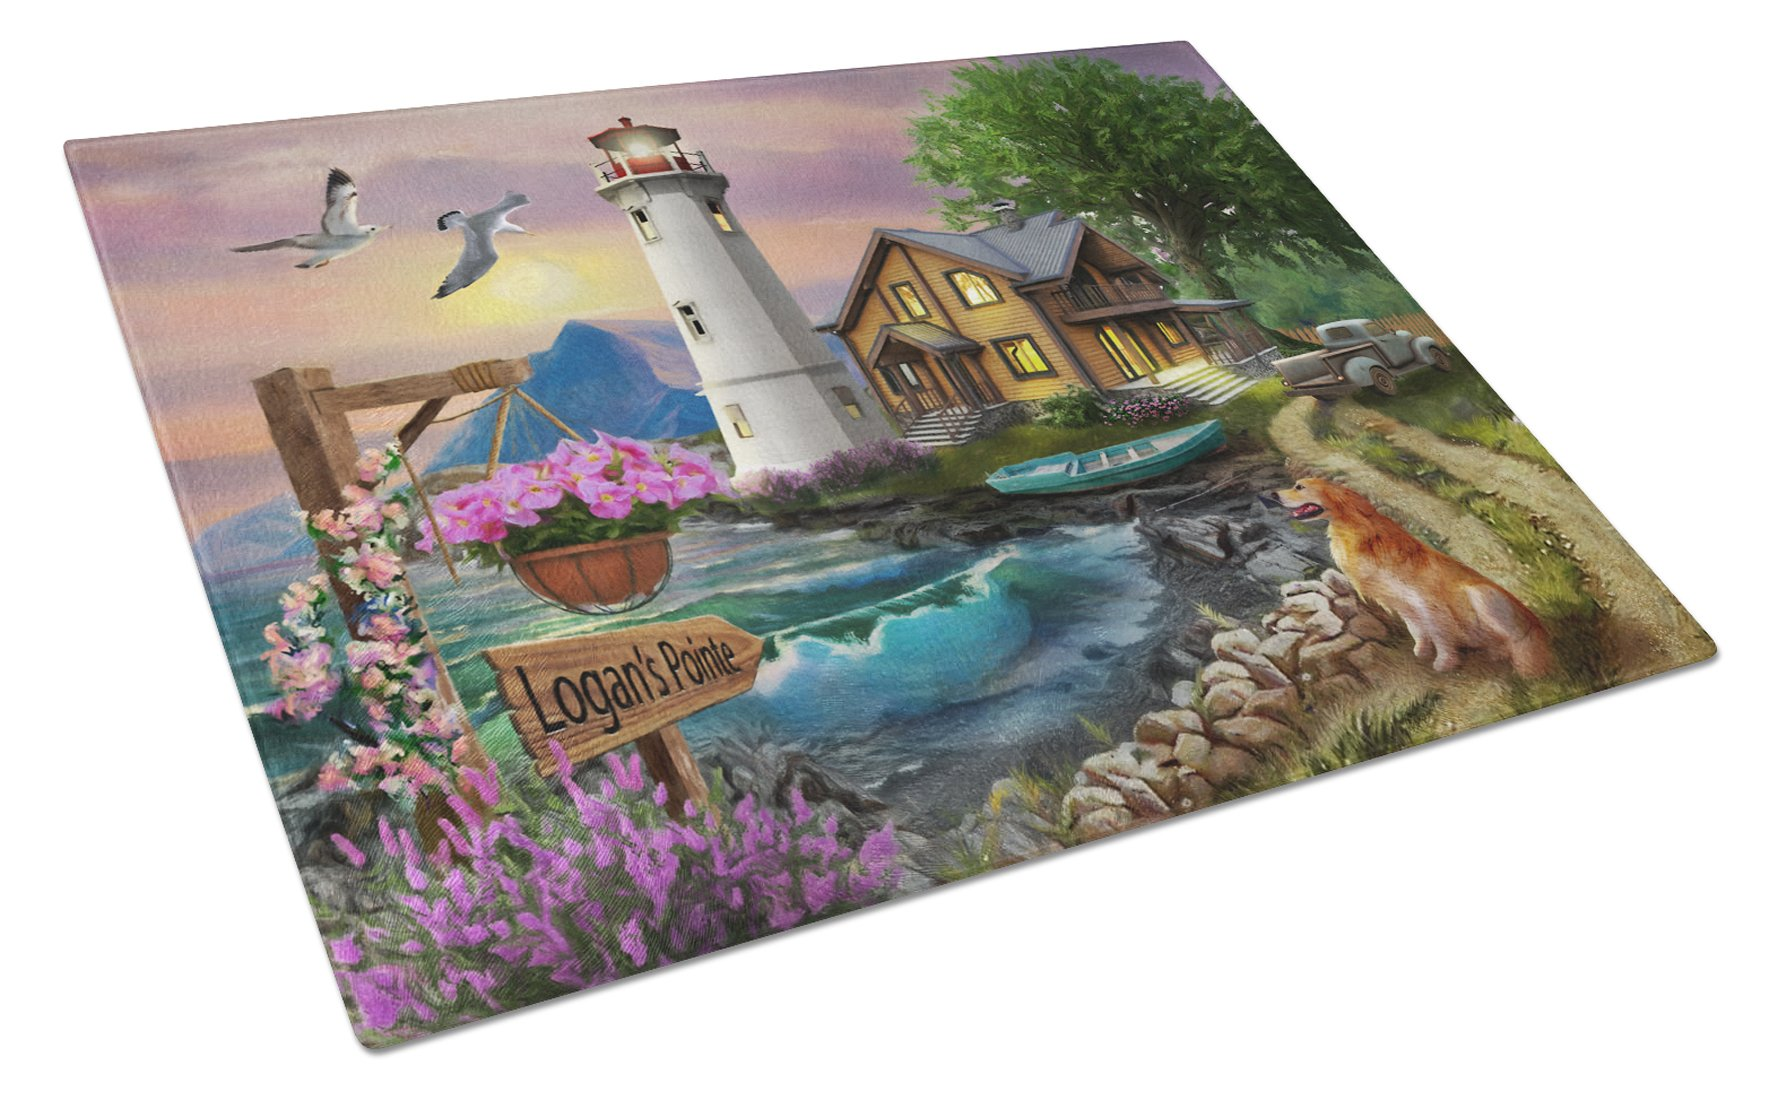 Logan's Pointe Lighthouse Golden Retriever Glass Cutting Board Large PTW2070LCB by Caroline's Treasures